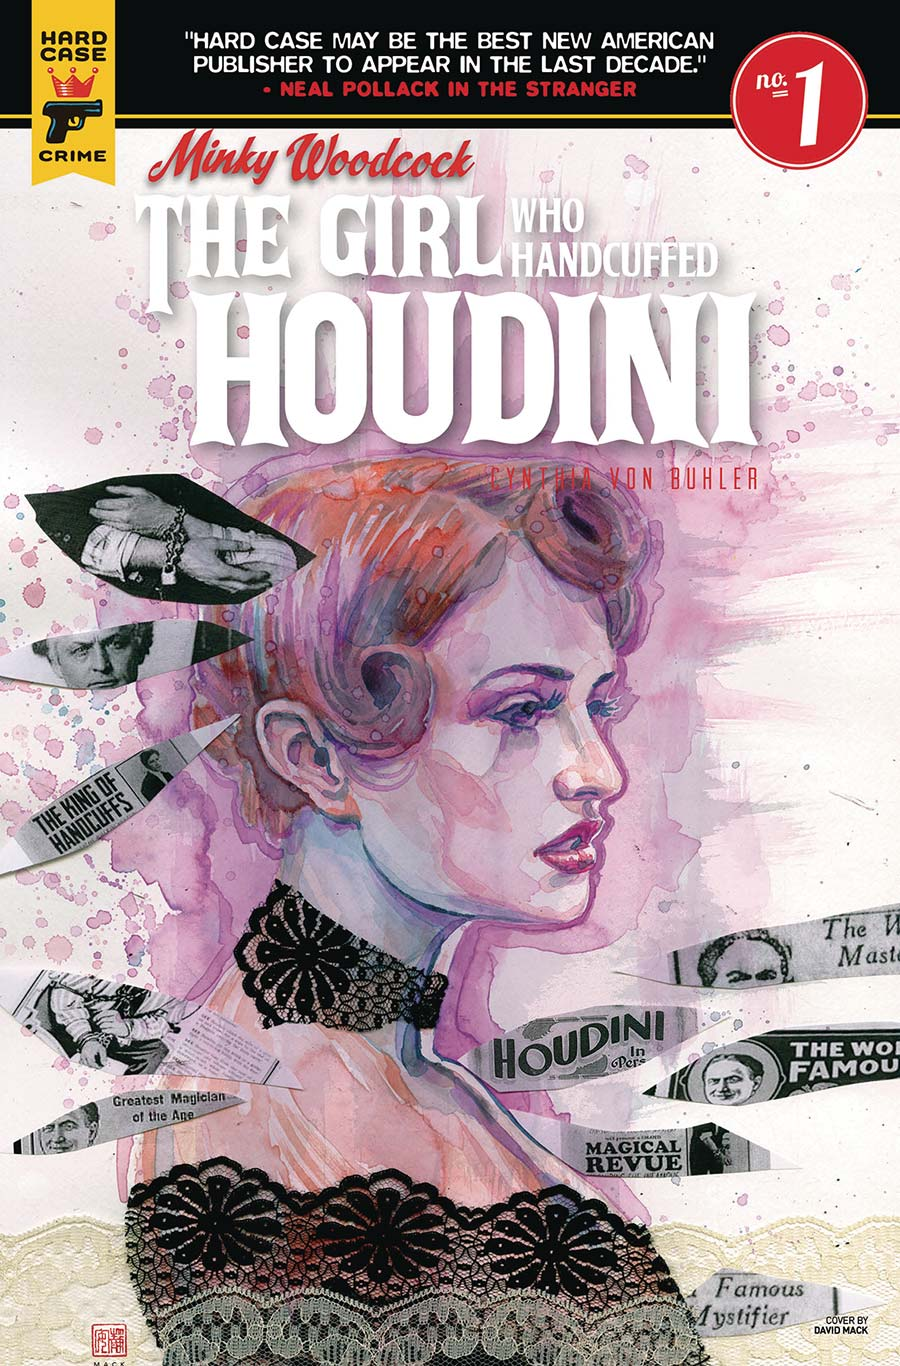 Minky Woodcock: The Girl Who Handcuffed Houdini